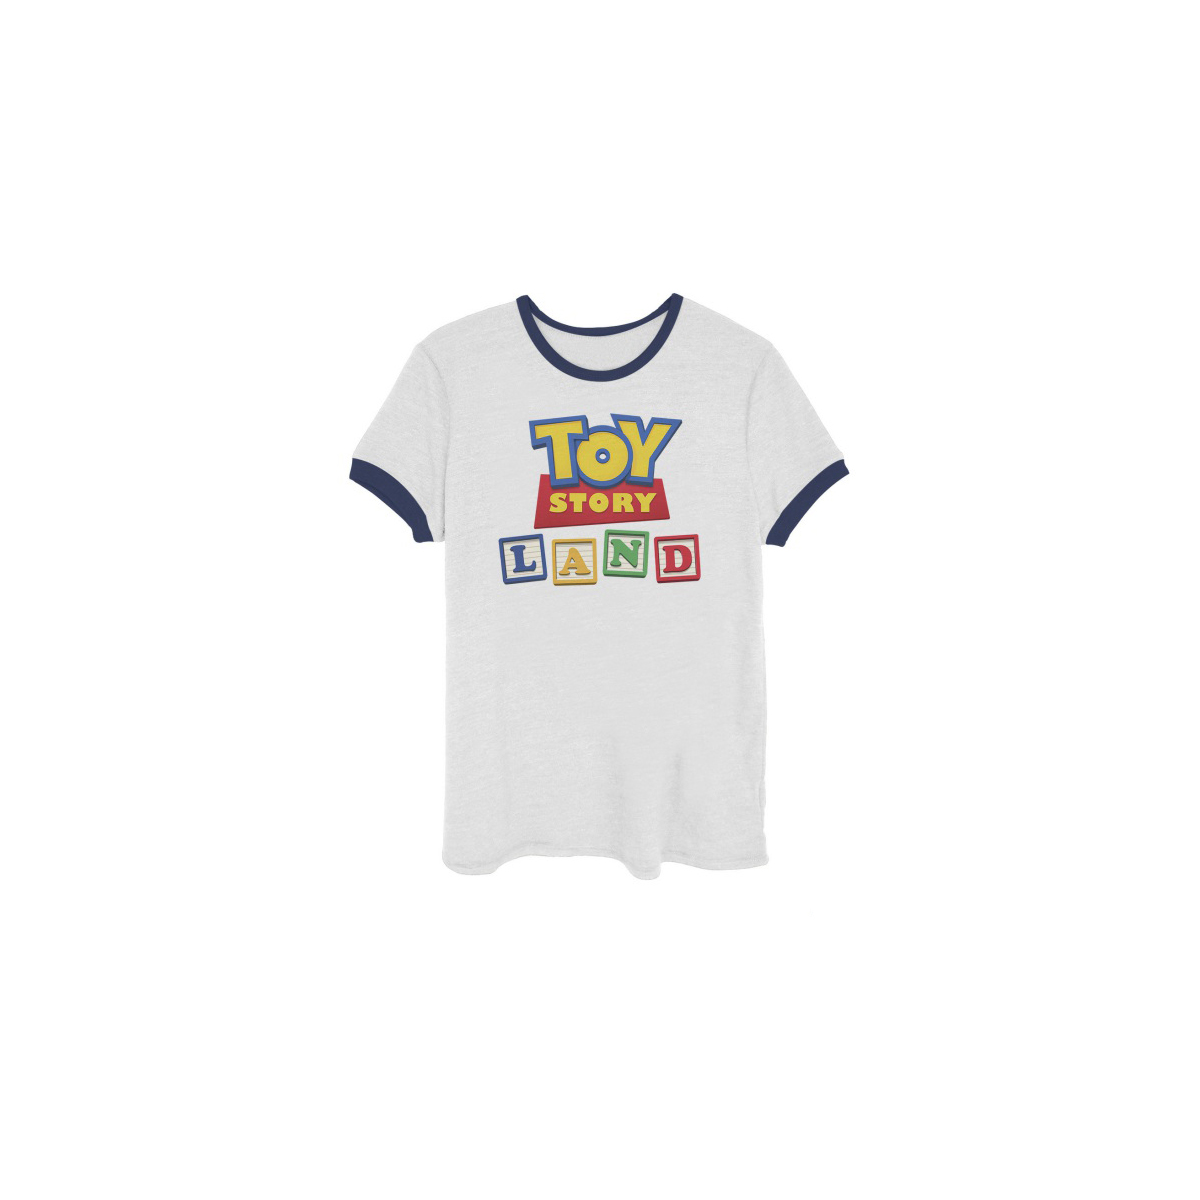 Boxlunch Celebrates Toy Story Land Opening With Nationwide